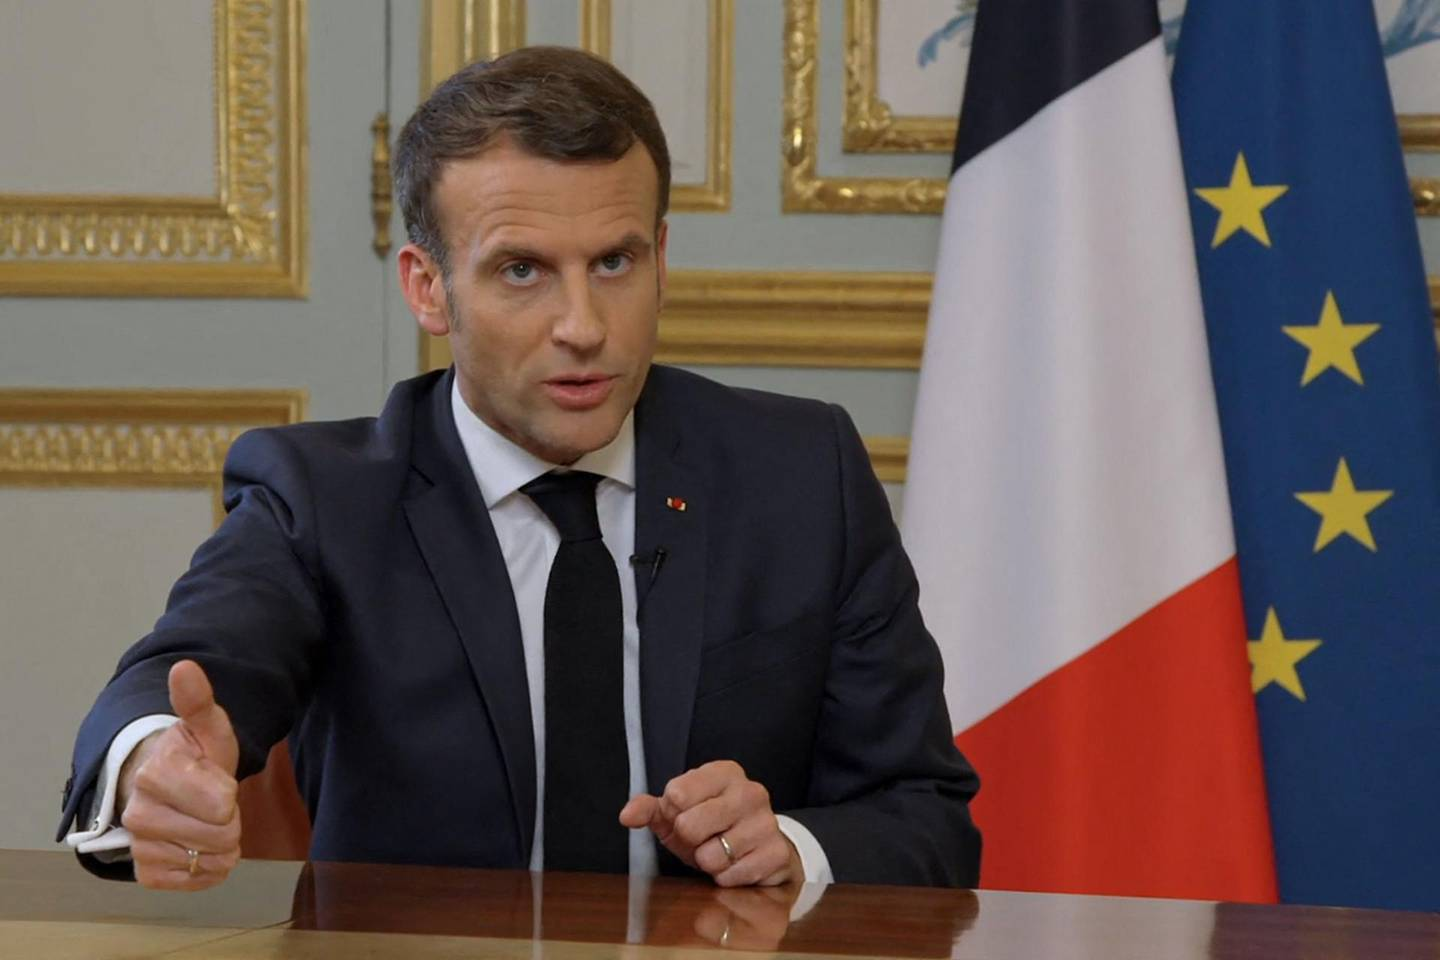 """French President Emmanuel Macron gives an interview at the Elysee Palace in Paris on March 23, 2021 to the show """"C Dans l'Air"""" on the French tv channel France 5 ahead of the broadcast of a documentary on France's diplomatic relations with Turkey.  / AFP / France 5 / -"""